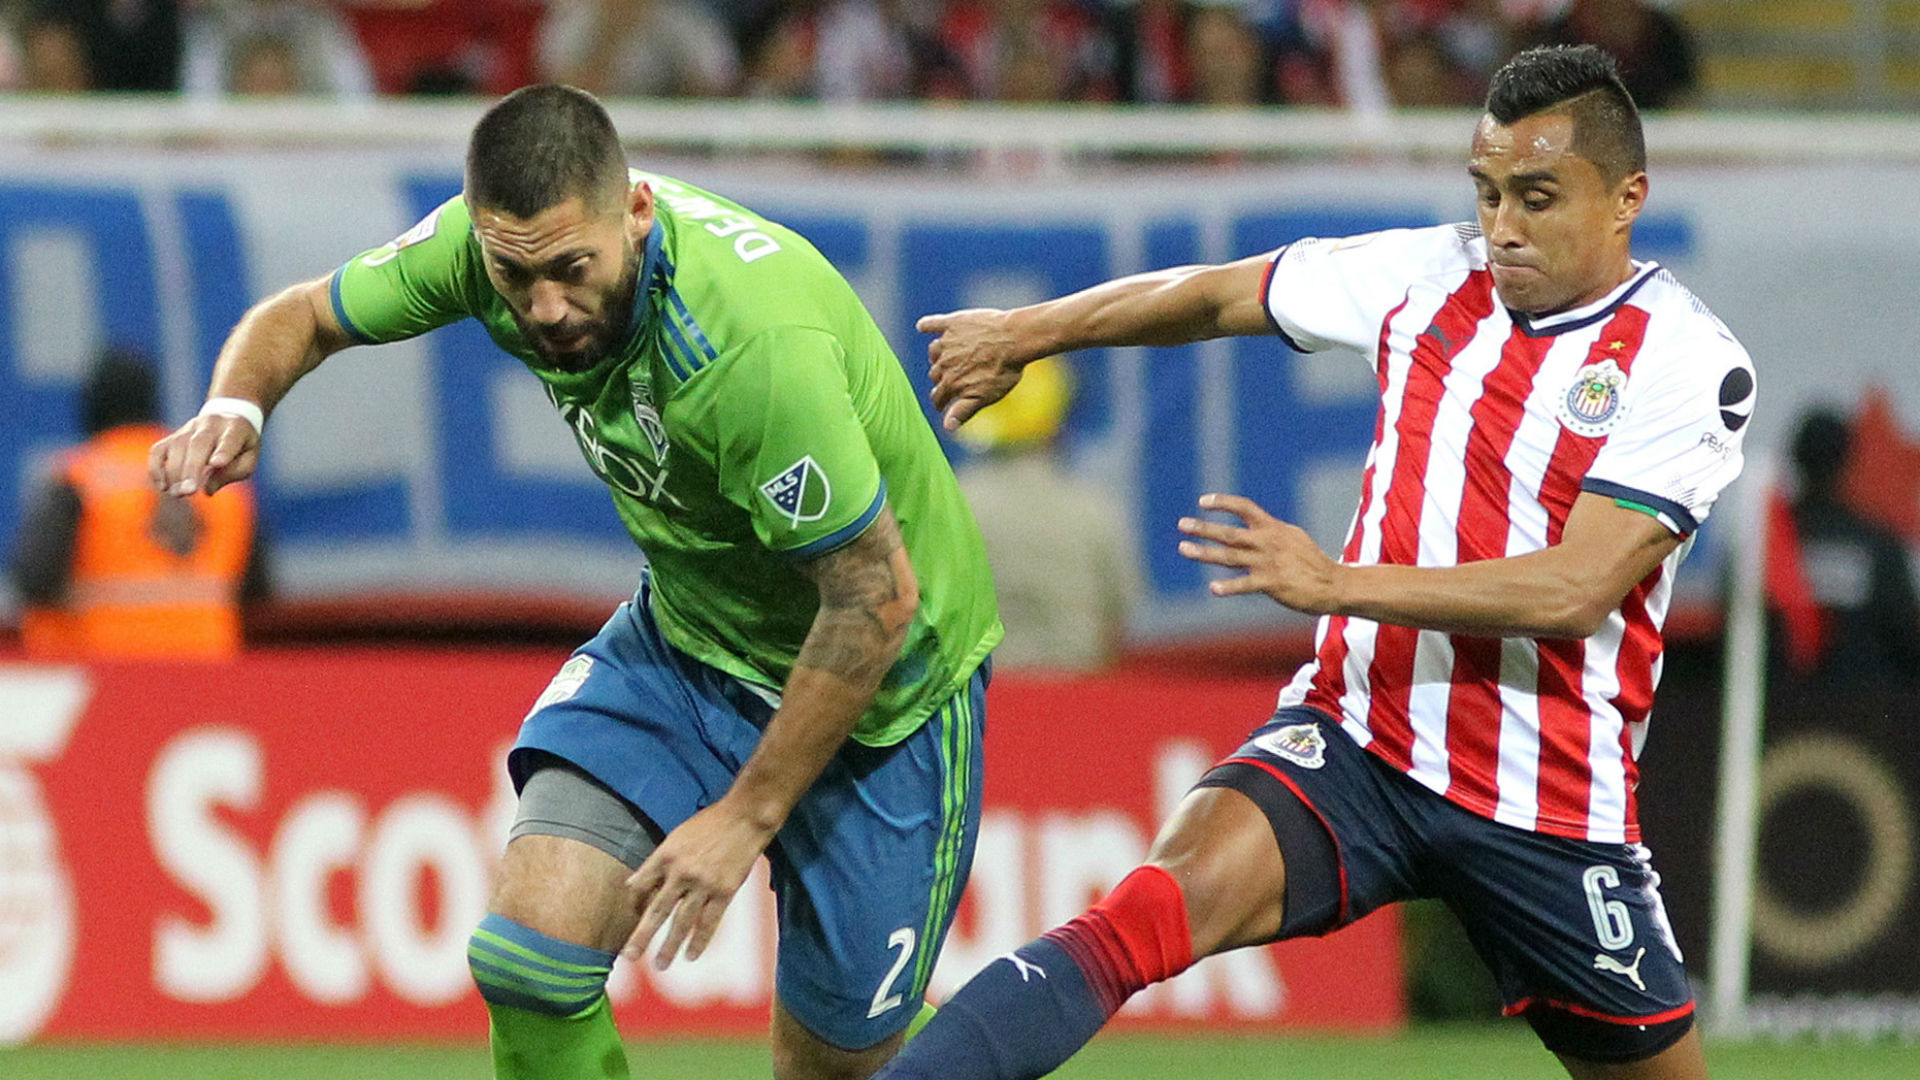 Clint Dempsey Seattle Sounders 2018